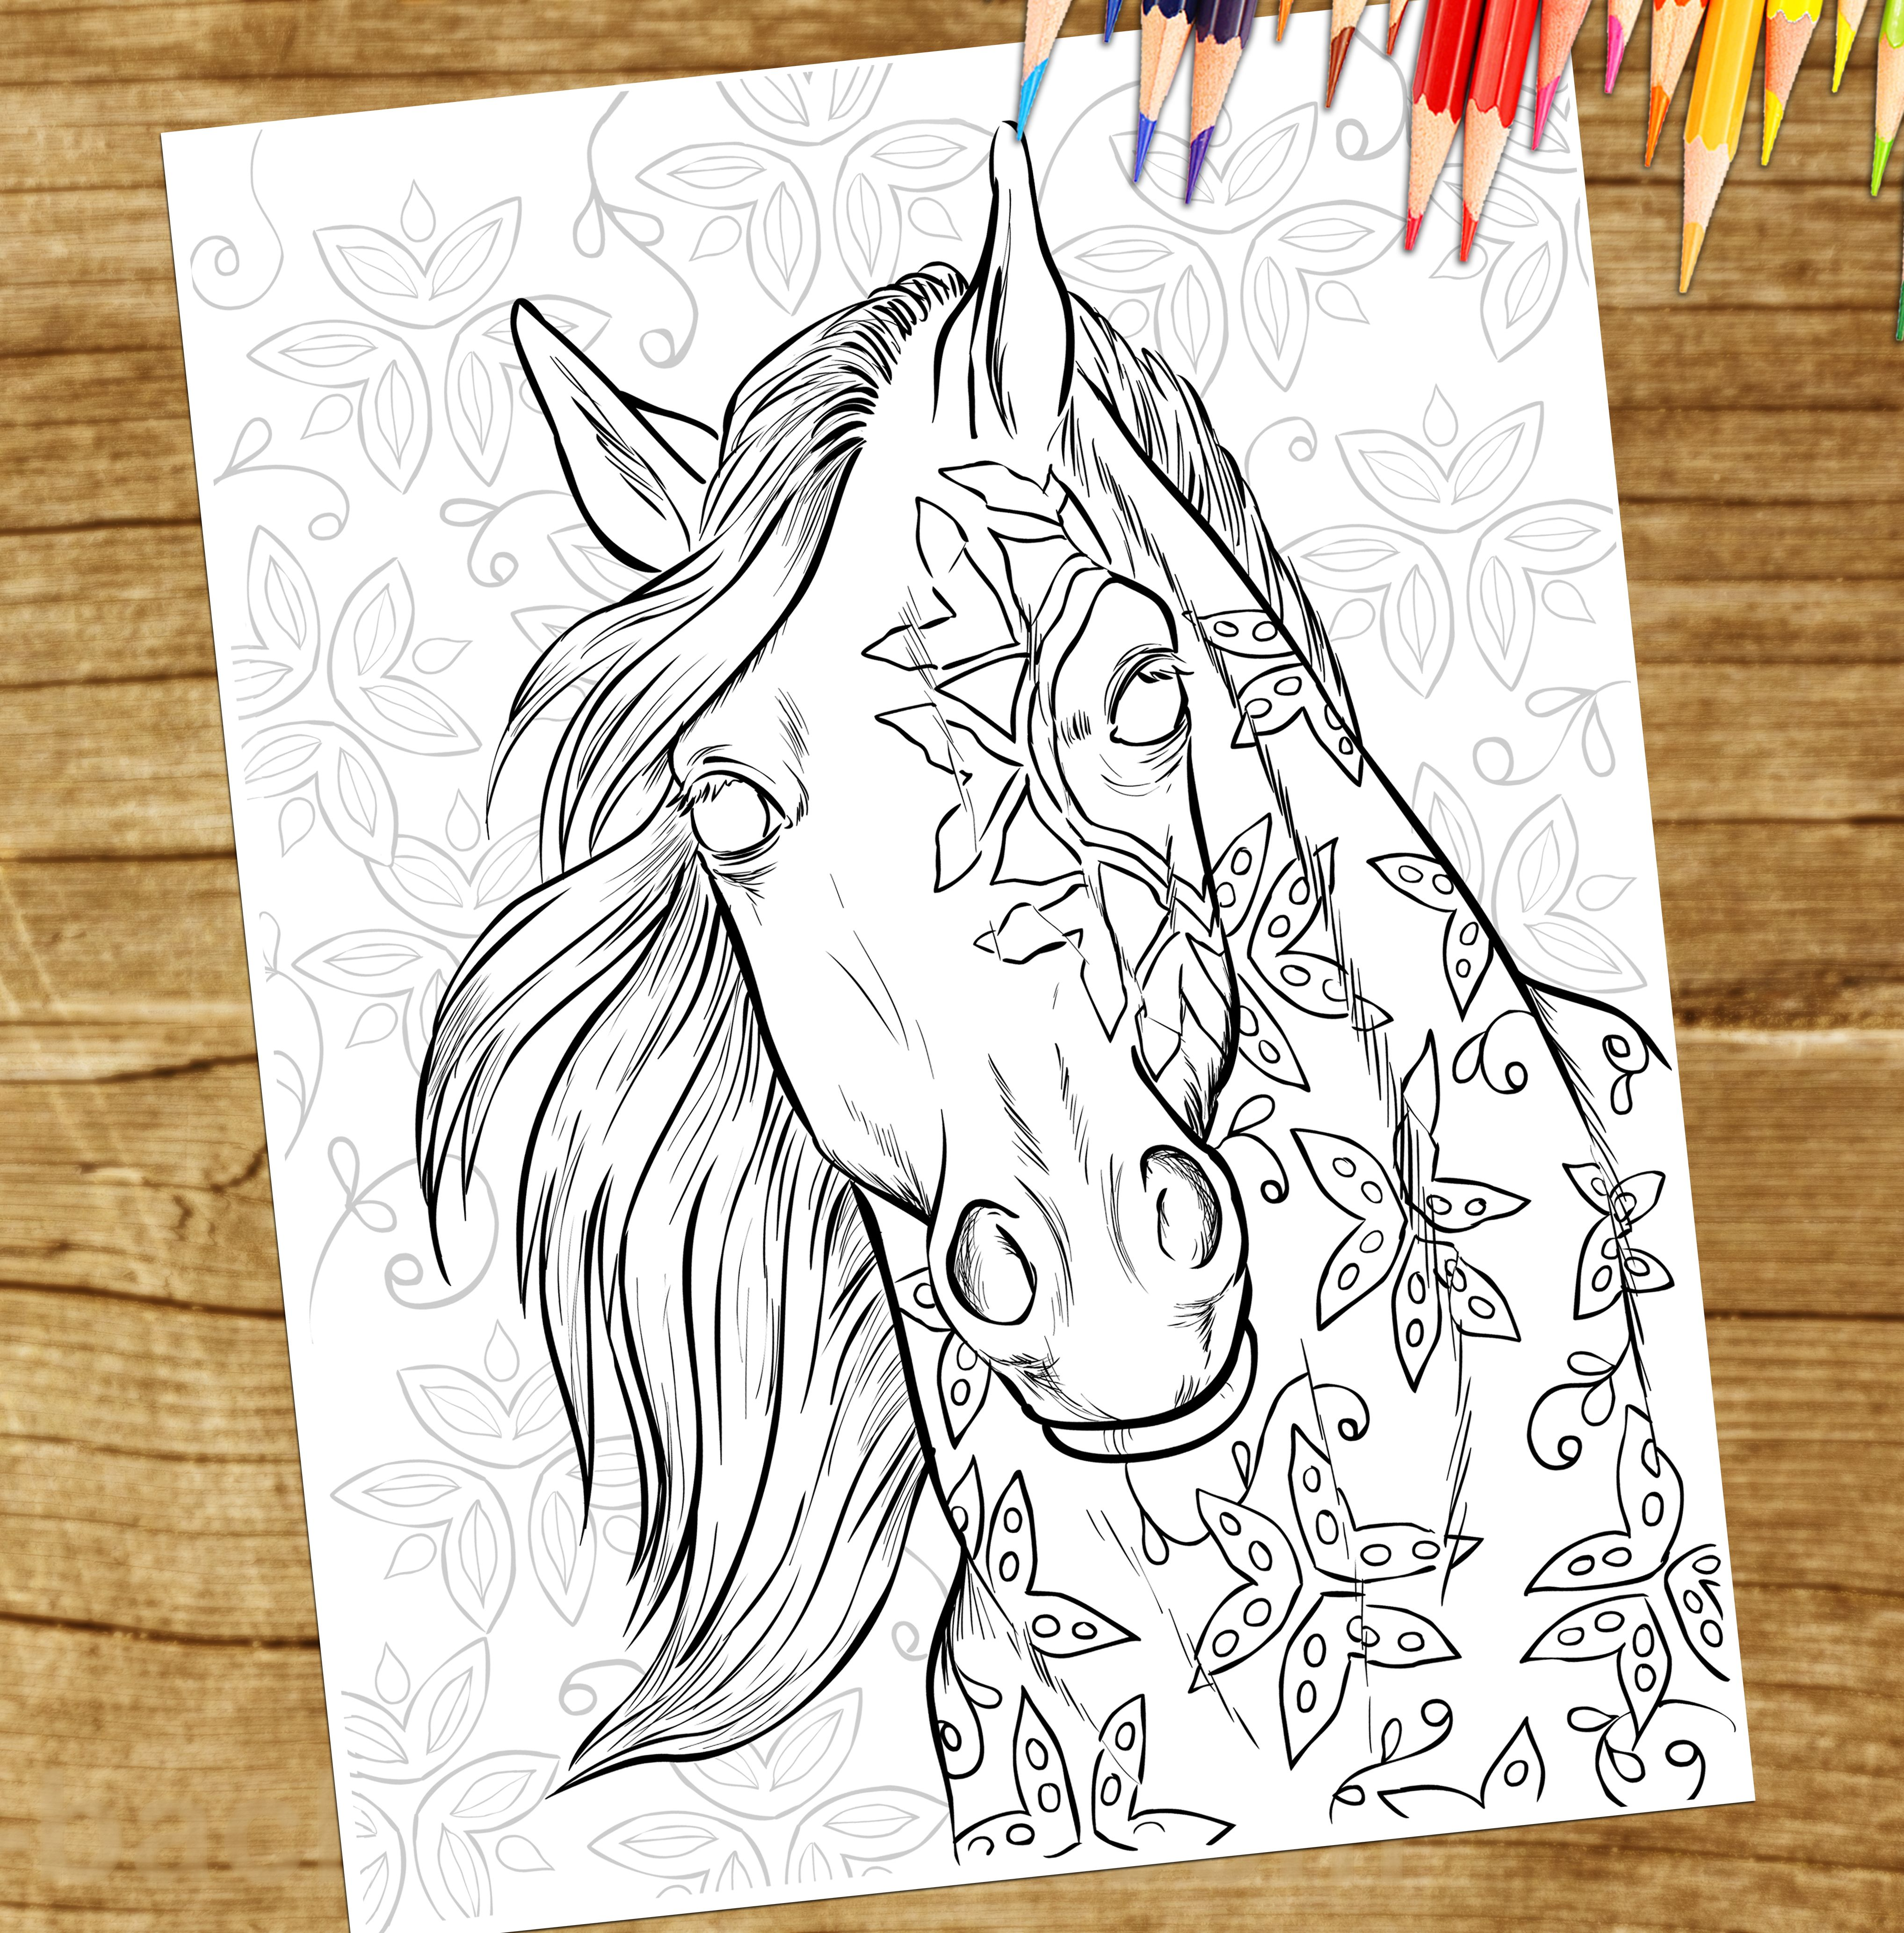 From The Adult Coloring Book Magical World Of Horses For Horse Lovers